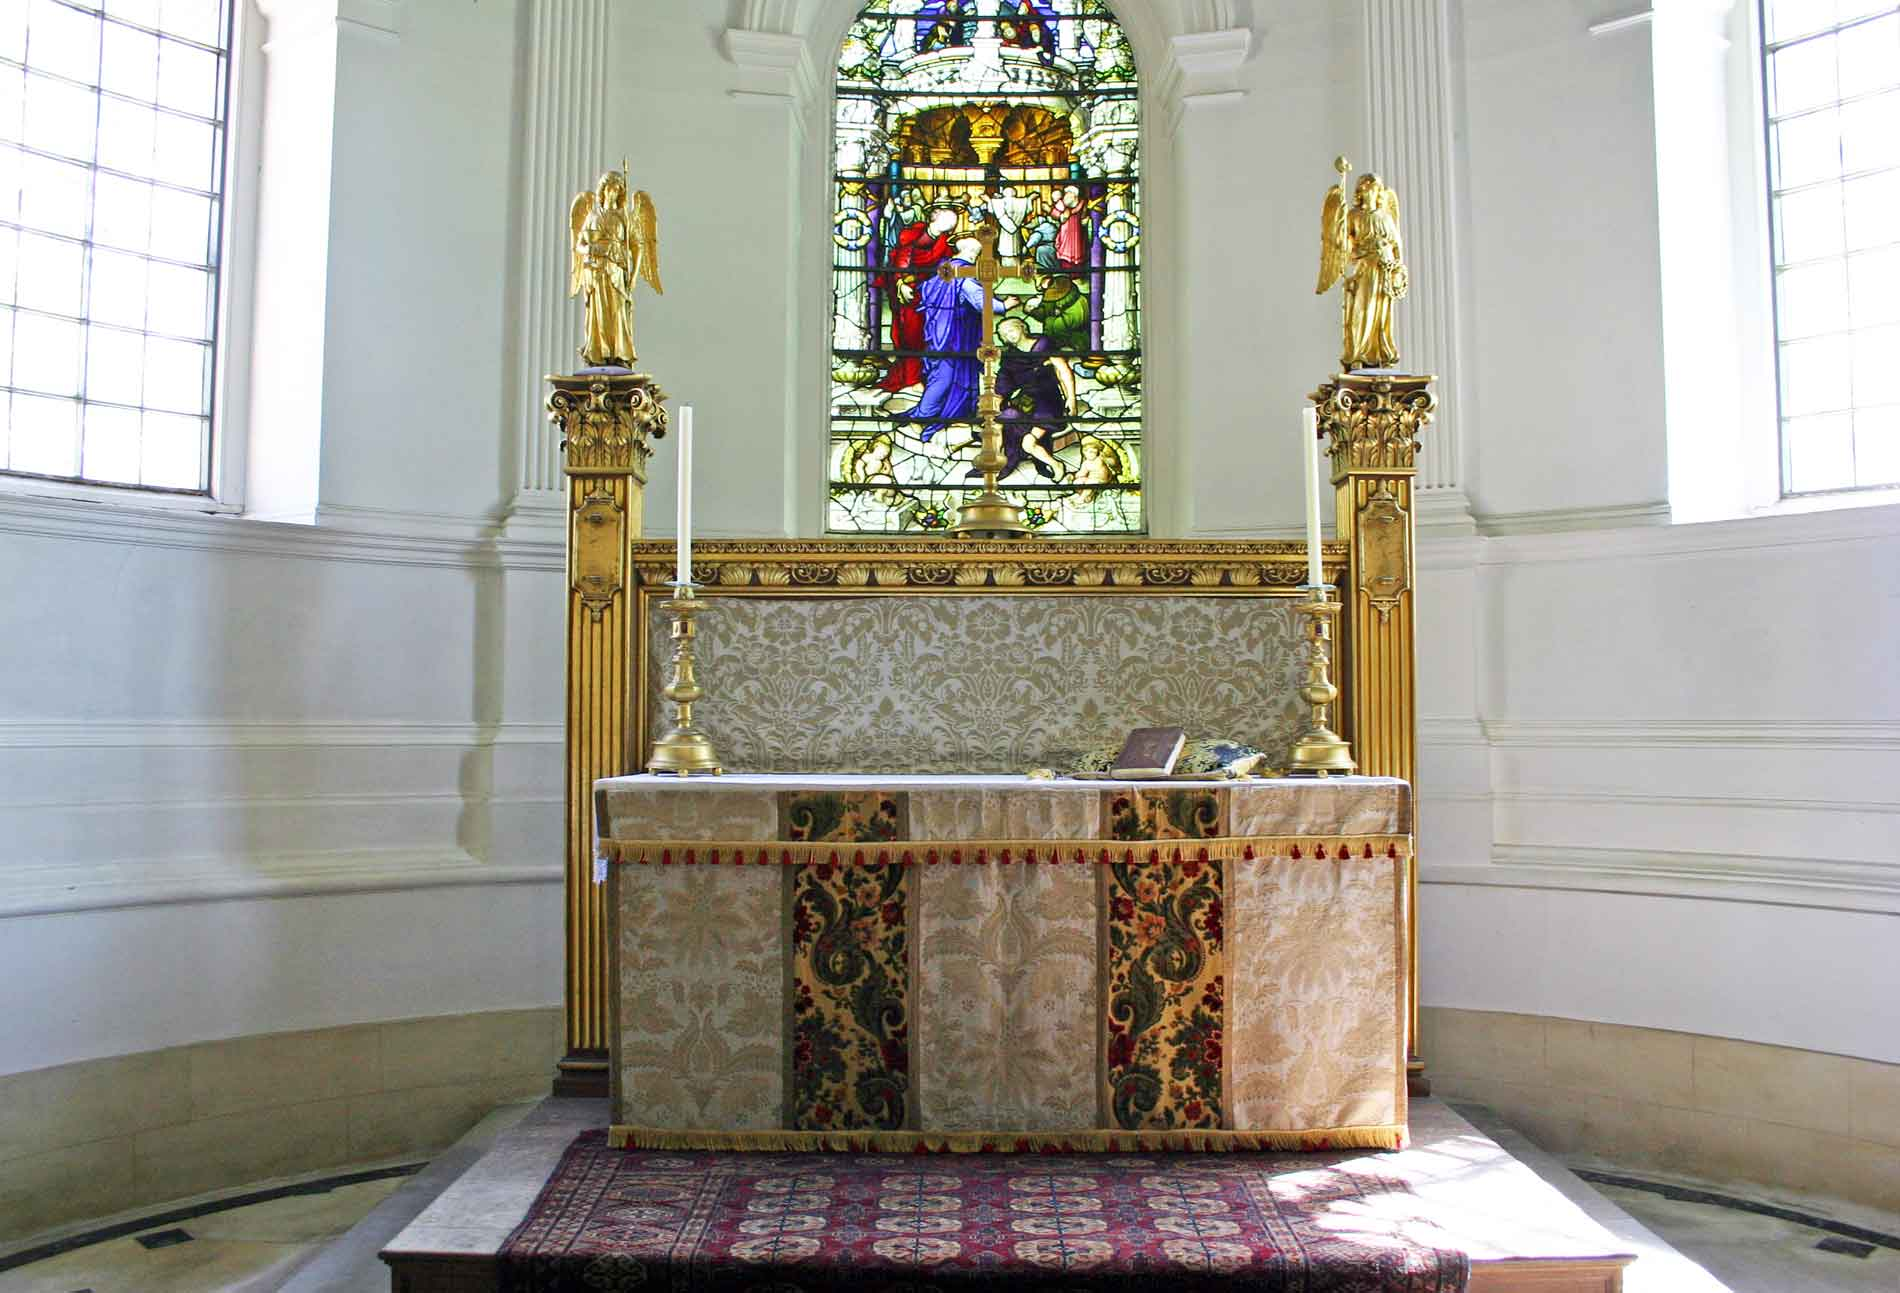 The Apse and Chancel